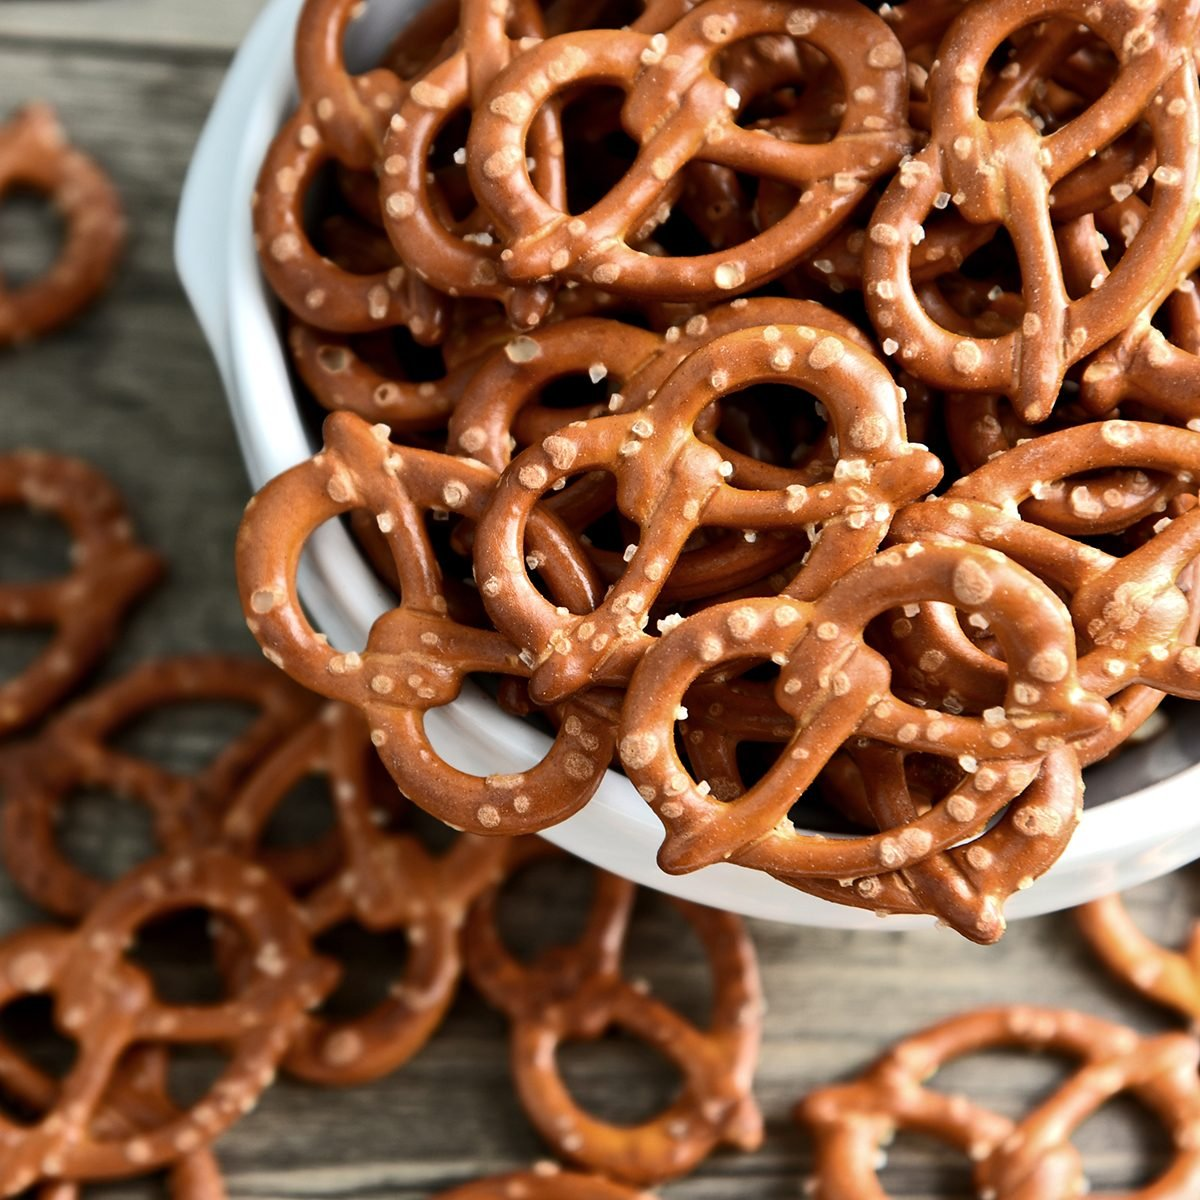 Hard Pretzels or Salted pretzels snack for party in white bowl on wooden floor